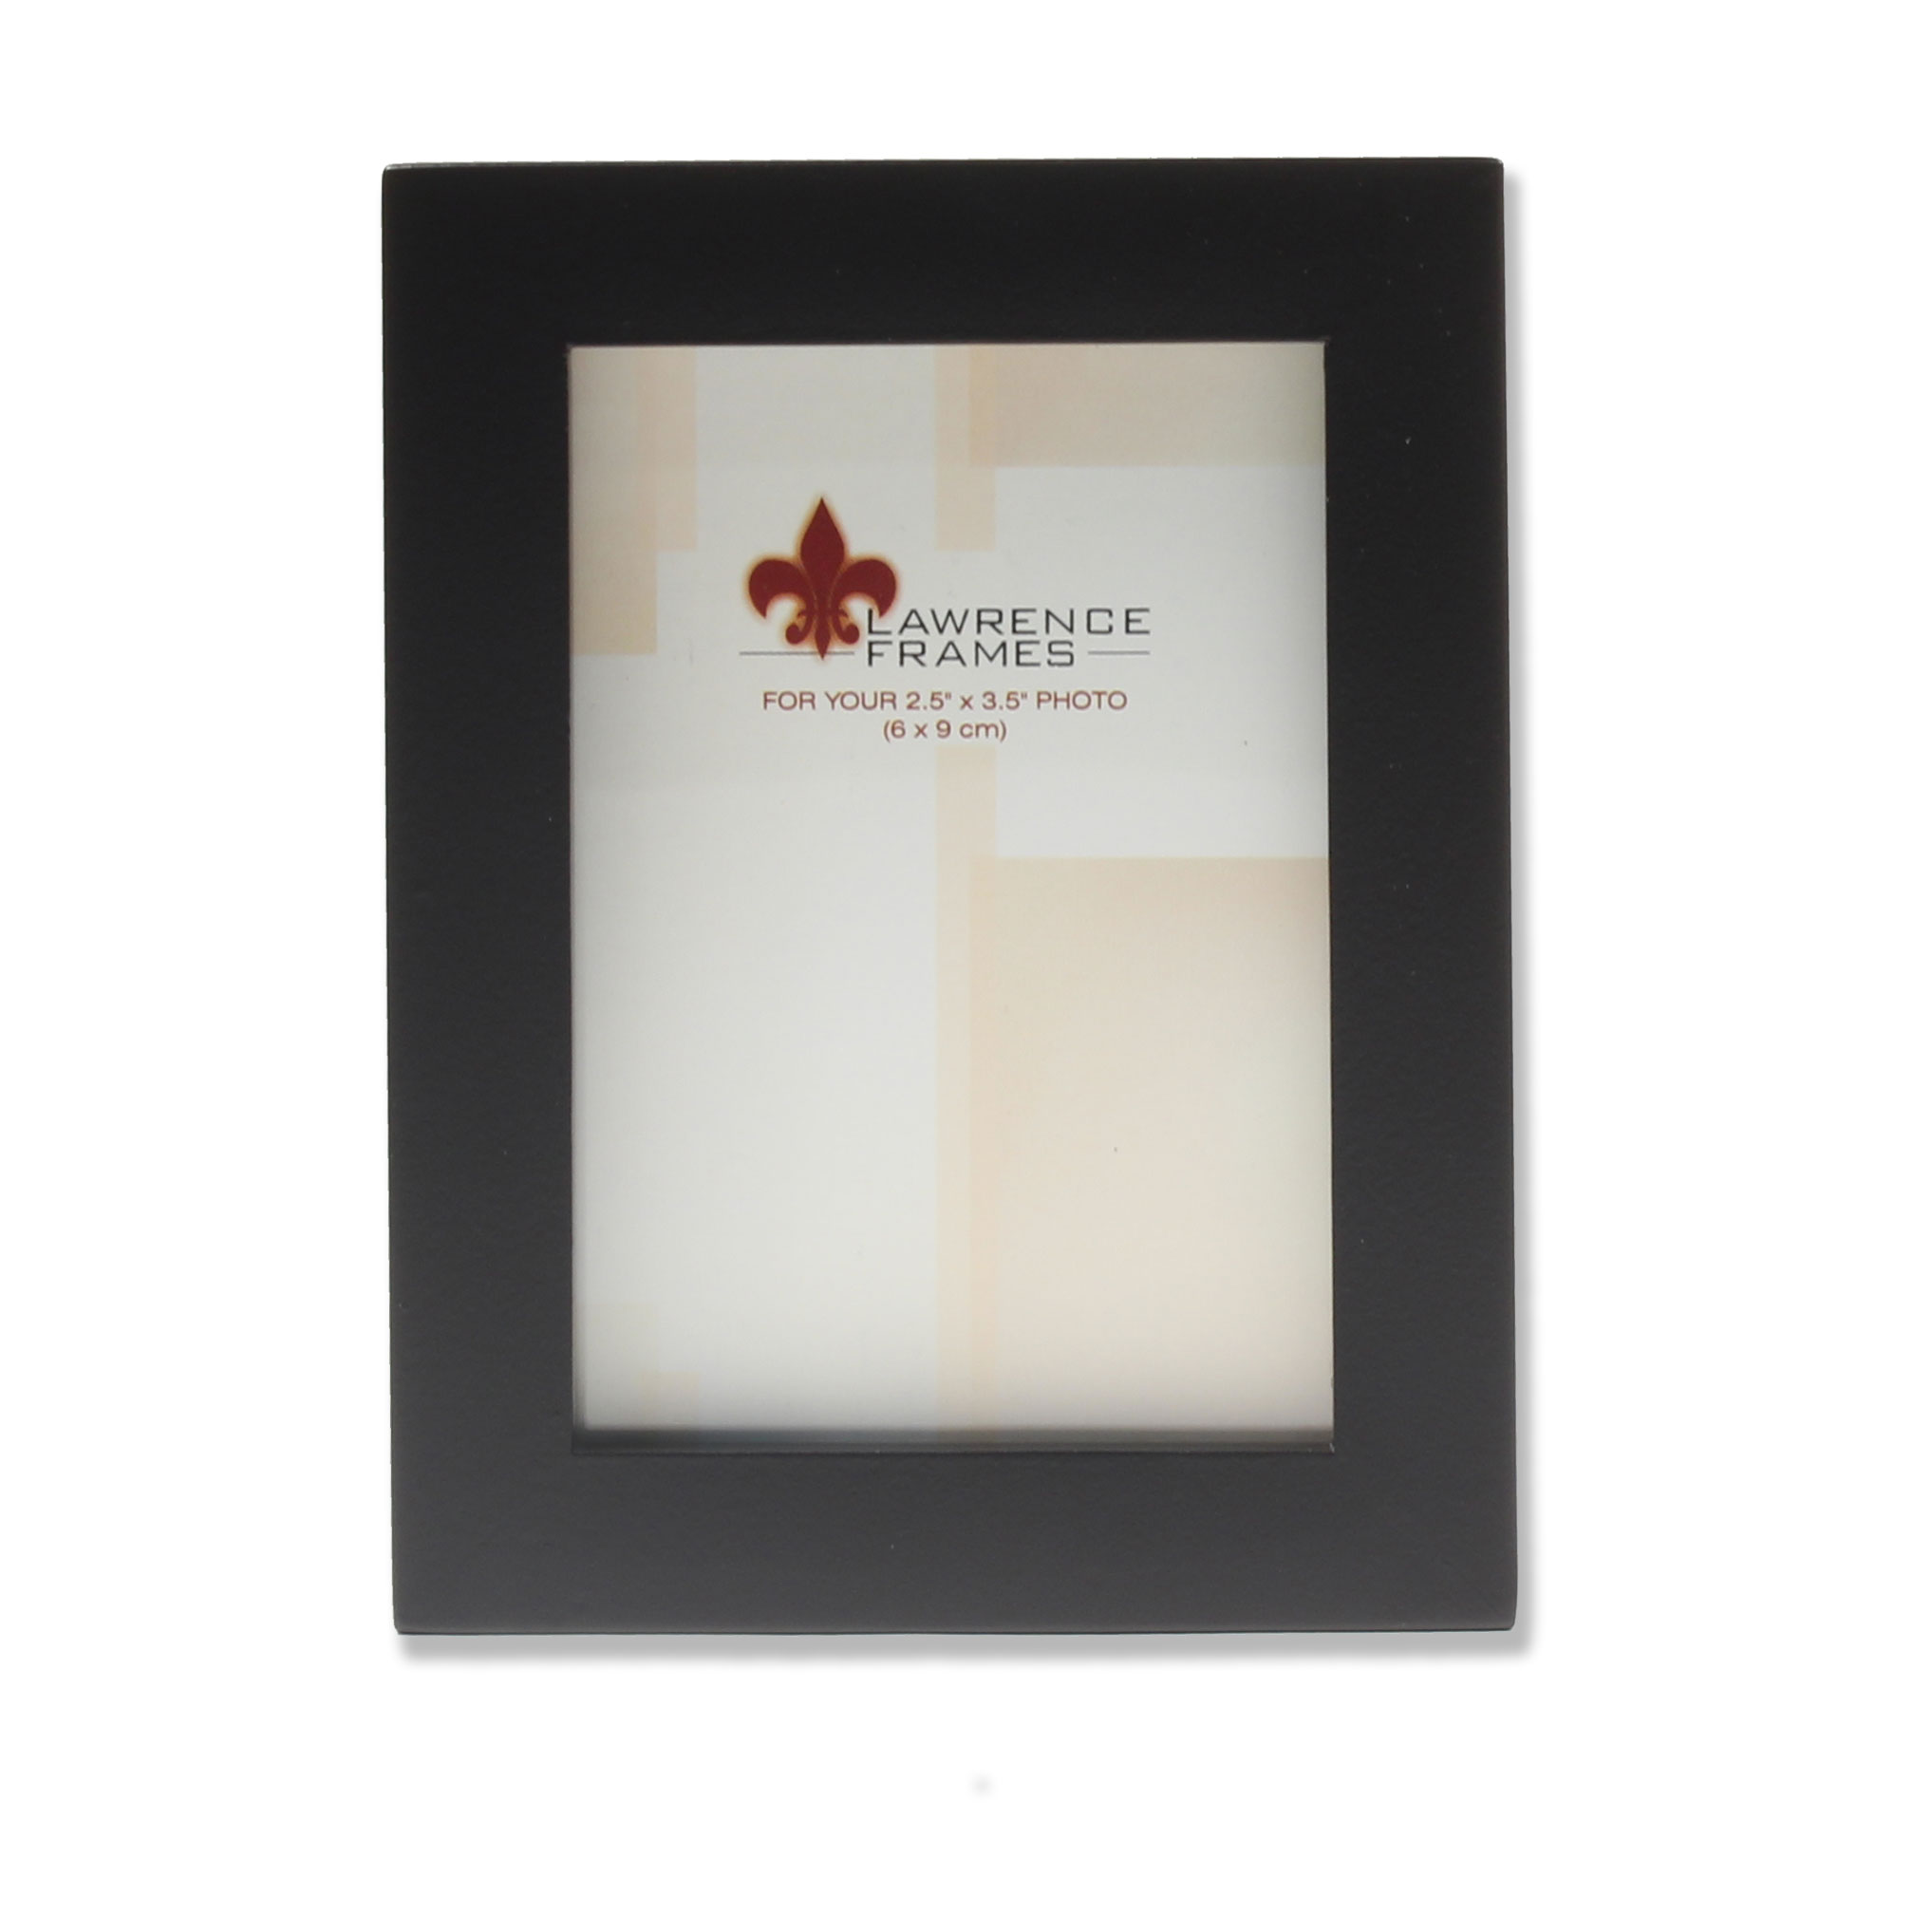 2x3 Black Wood Picture Frame Gallery Collection by Lawrence Frames